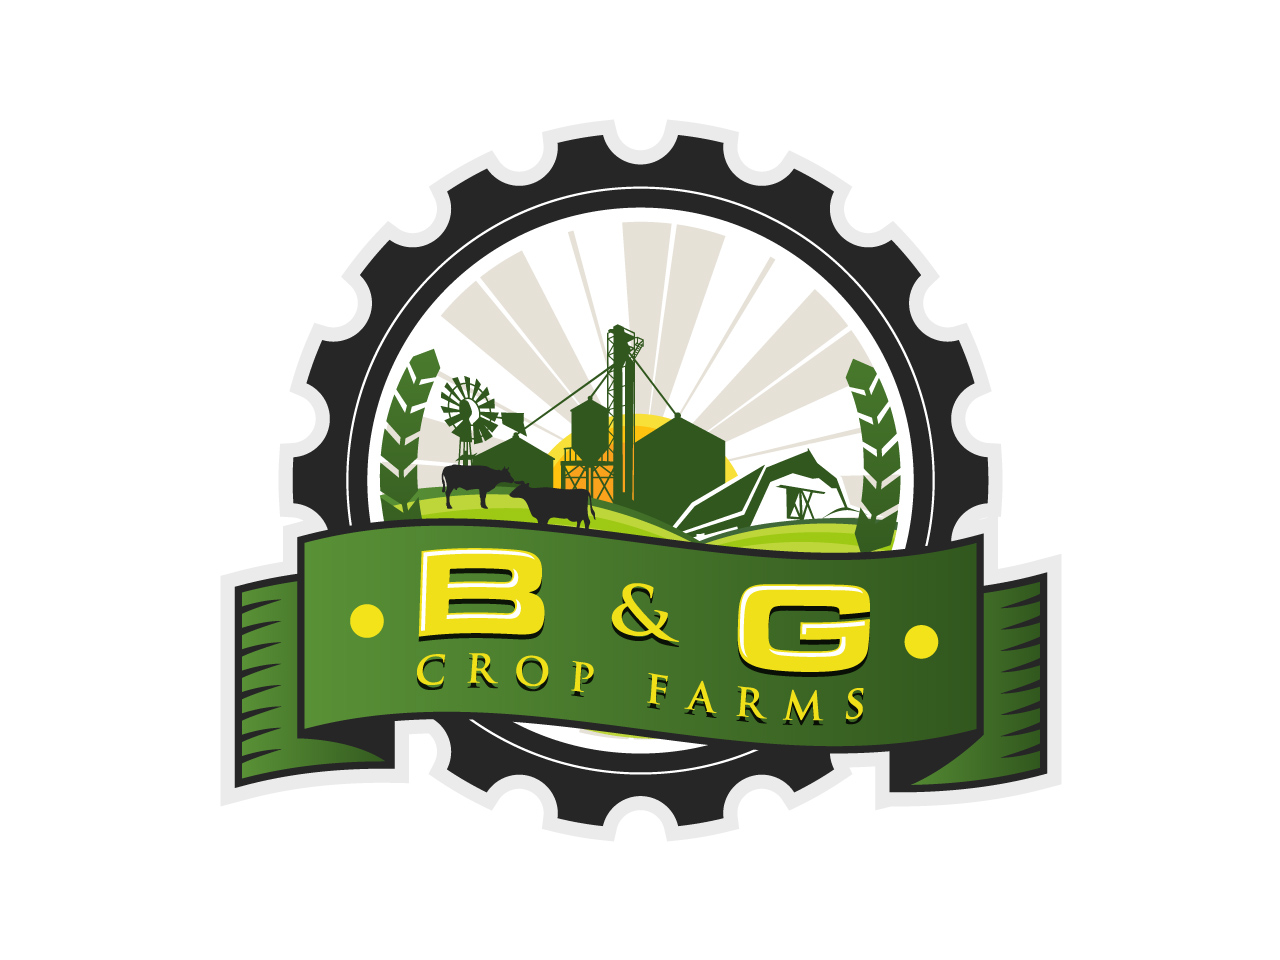 Logo Design by jpbituin - Entry No. 63 in the Logo Design Contest Artistic Logo Design for B & G Crop Farms.